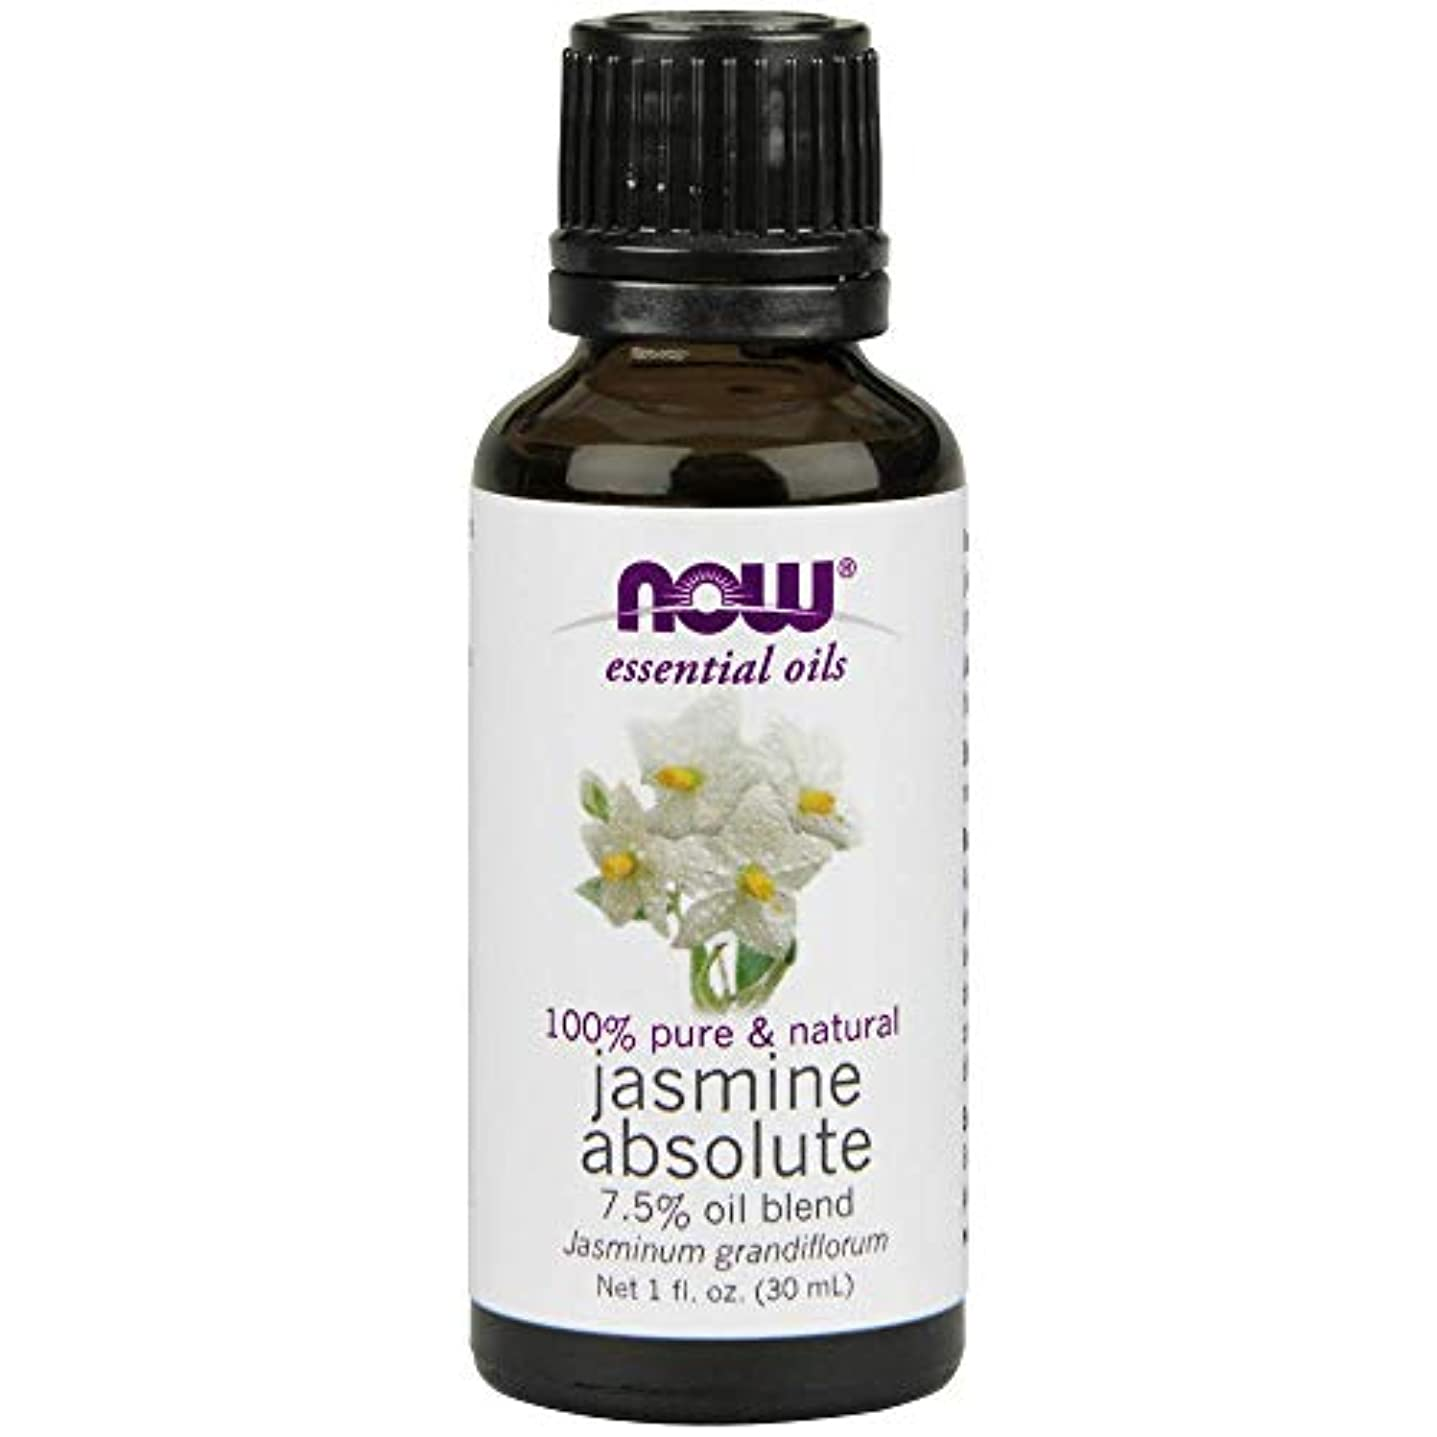 不満鹿造船Now - Jasmine Absolute Oil 7.5% Oil Blend 1 oz (30 ml) [並行輸入品]